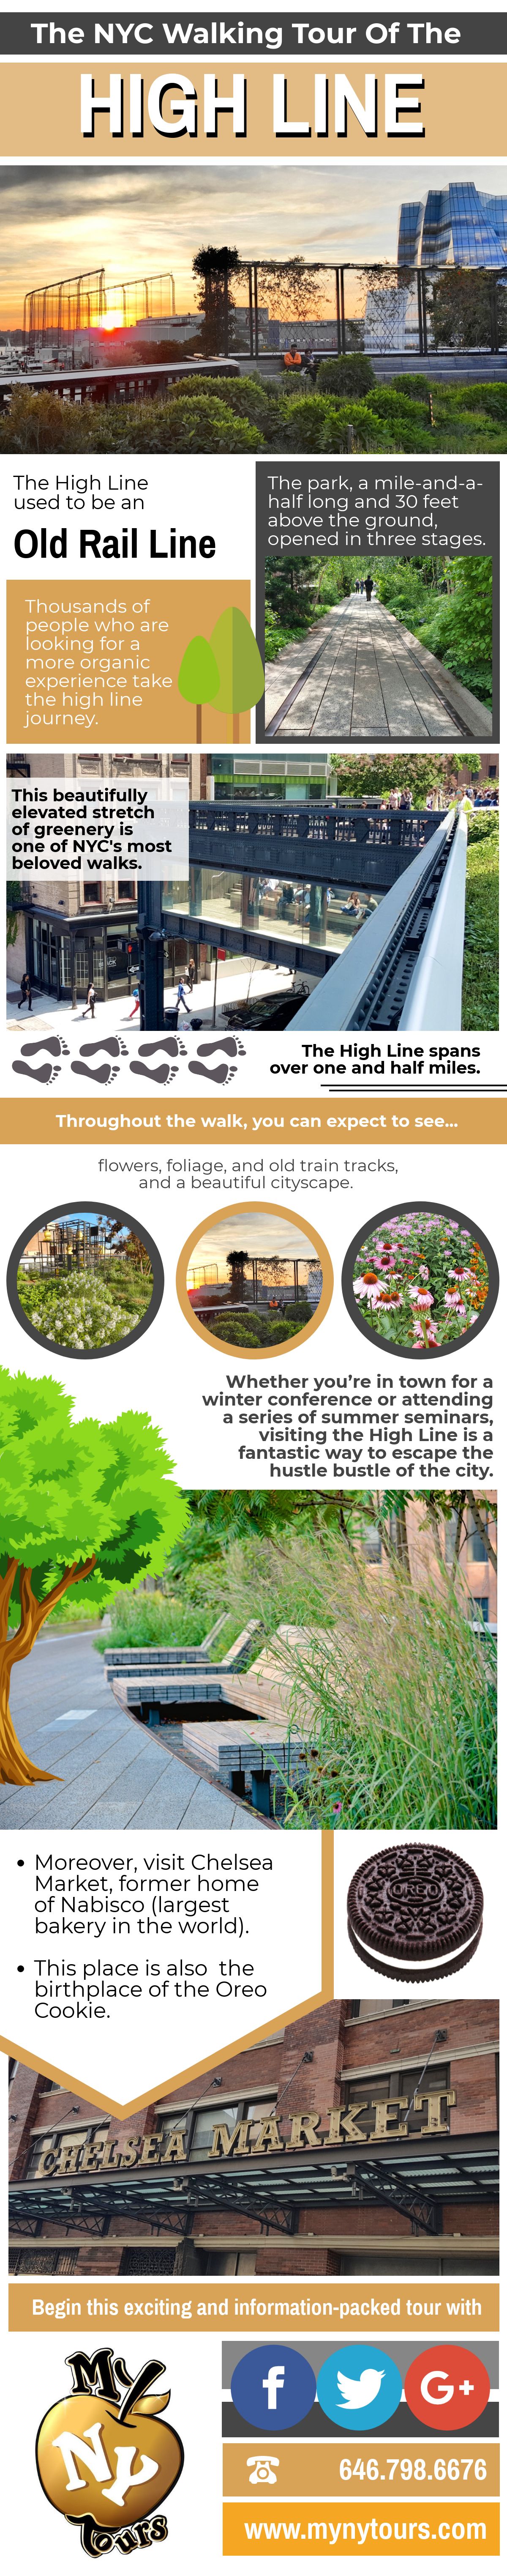 high line - infographic